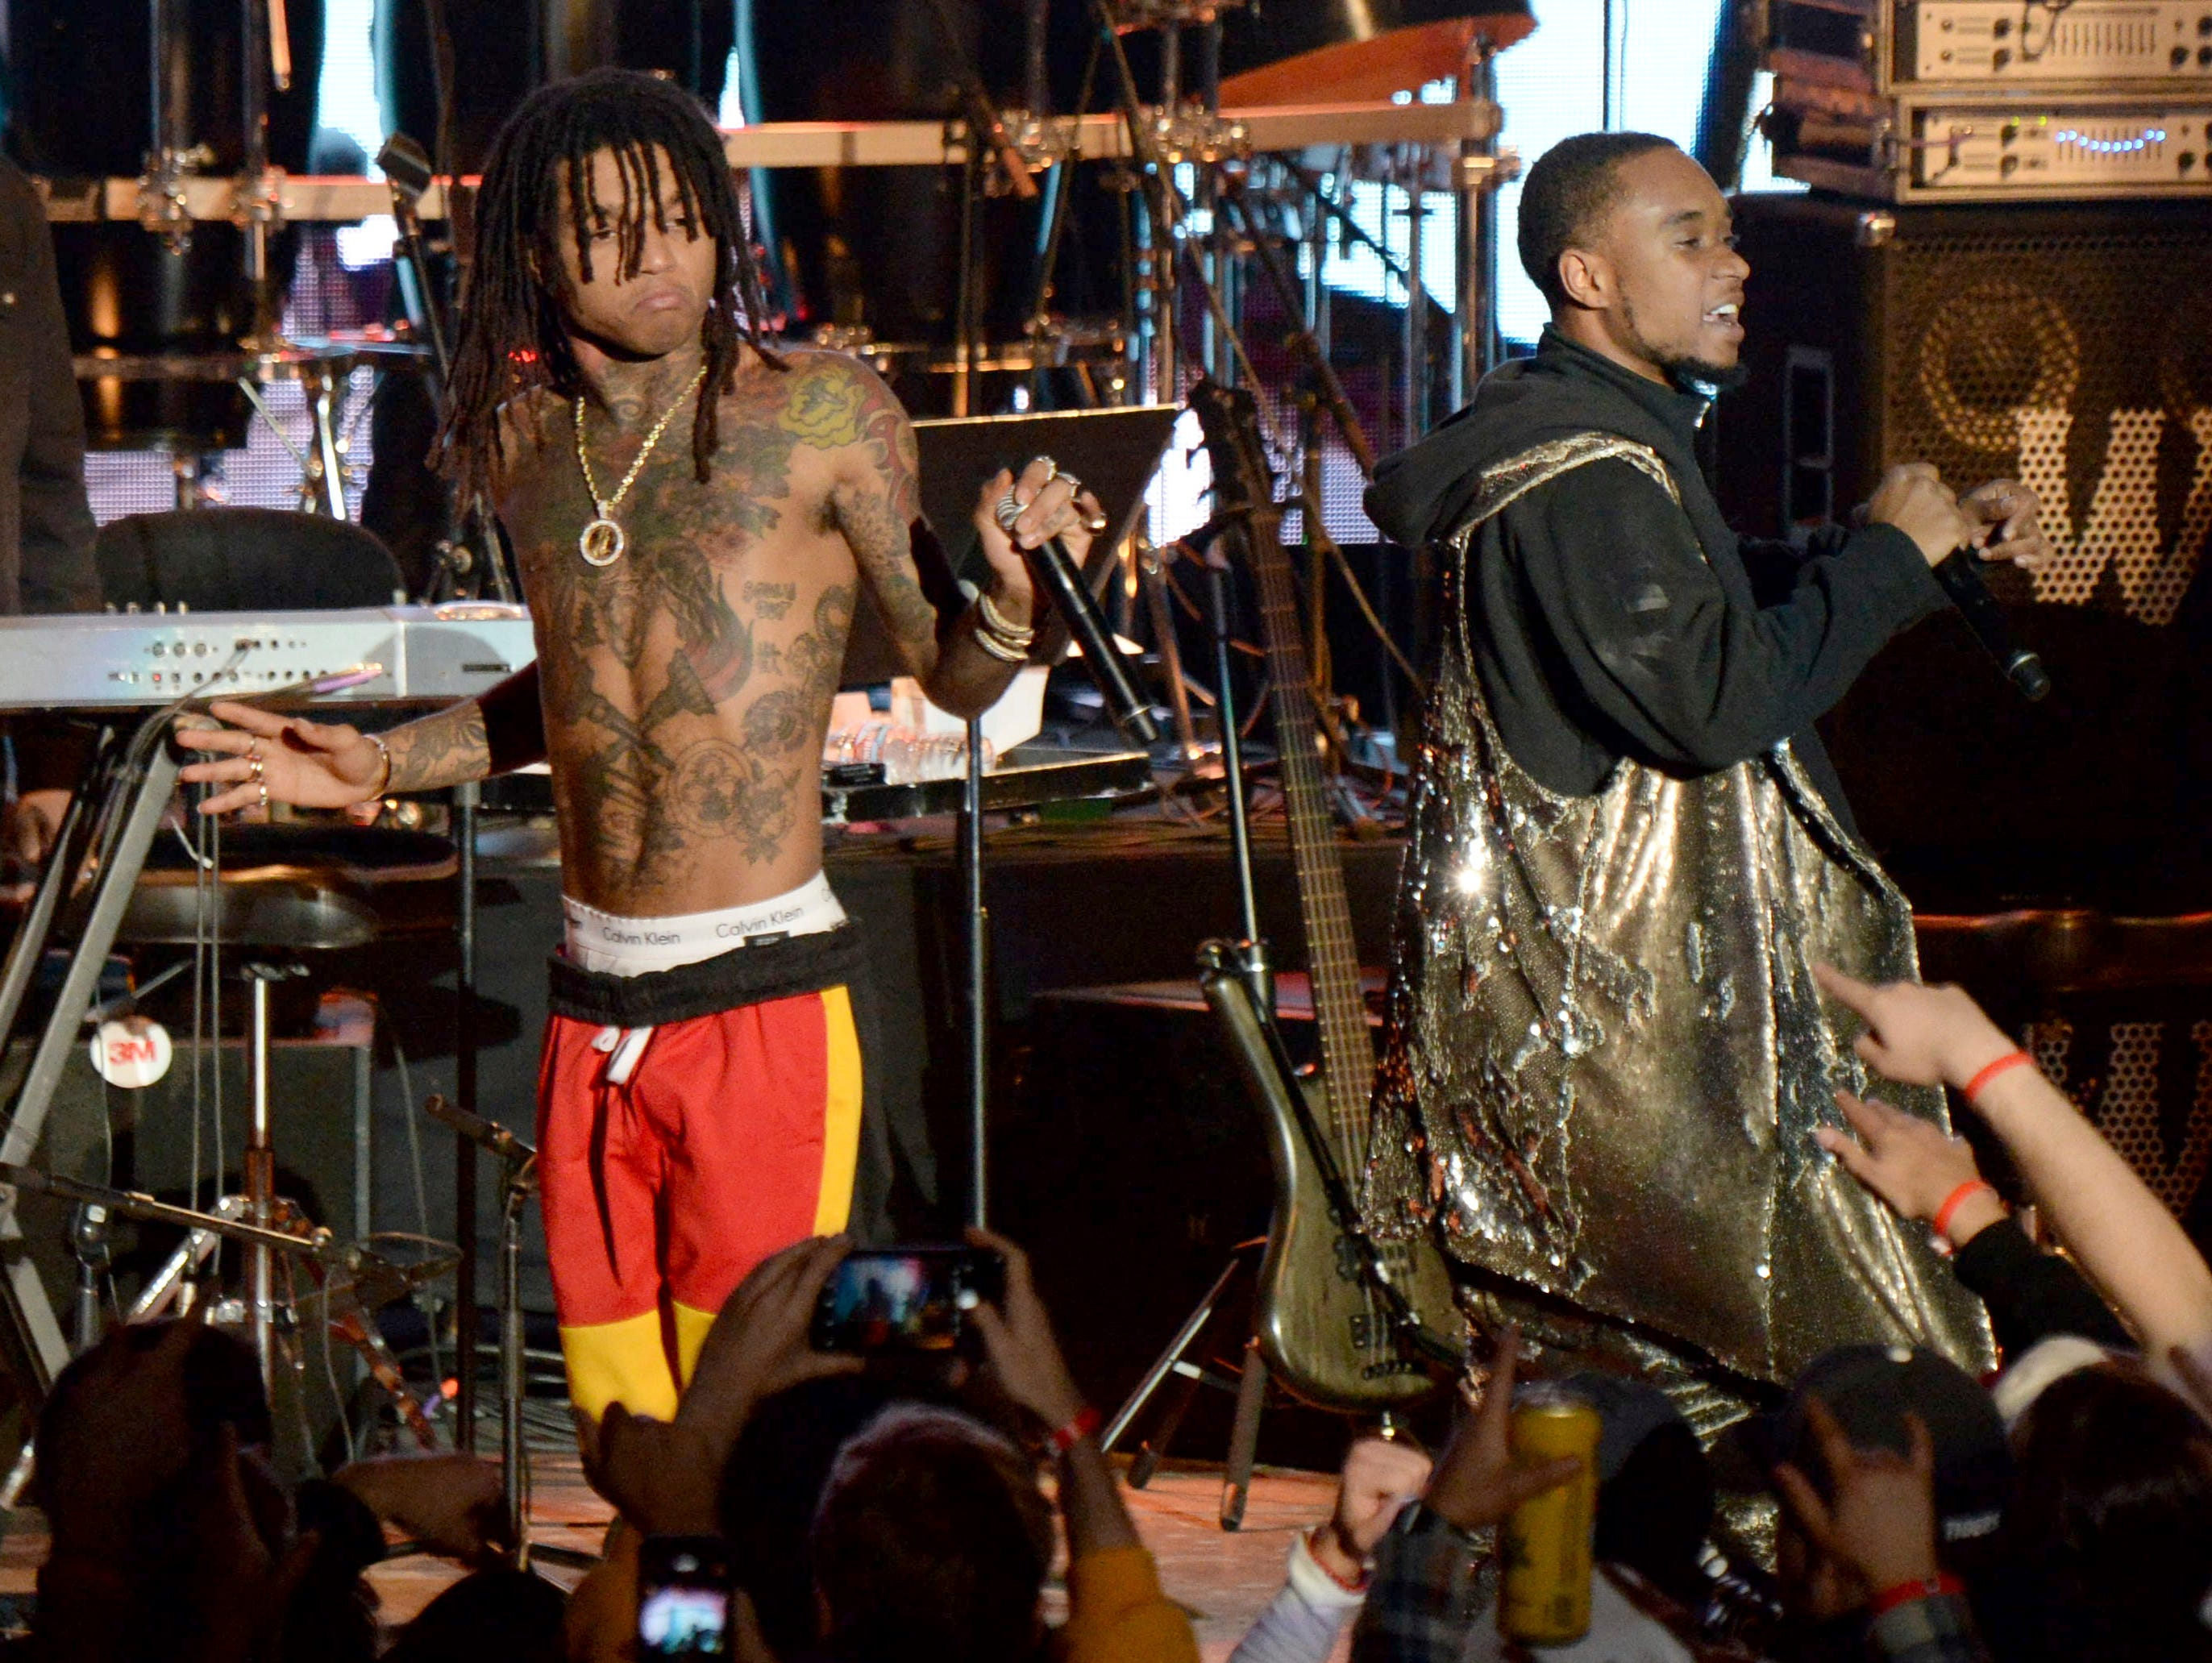 Swae Lee, left, and Slim Jxmmi, of Rae Sremmurd, perform during the tribute event Mac Miller: A Celebration of Life on Wednesday, Oct. 31, 2018, at the Greek Theatre in Los Angeles. (Photo by Amy Harris/Invision/AP) ORG XMIT: CAPM113